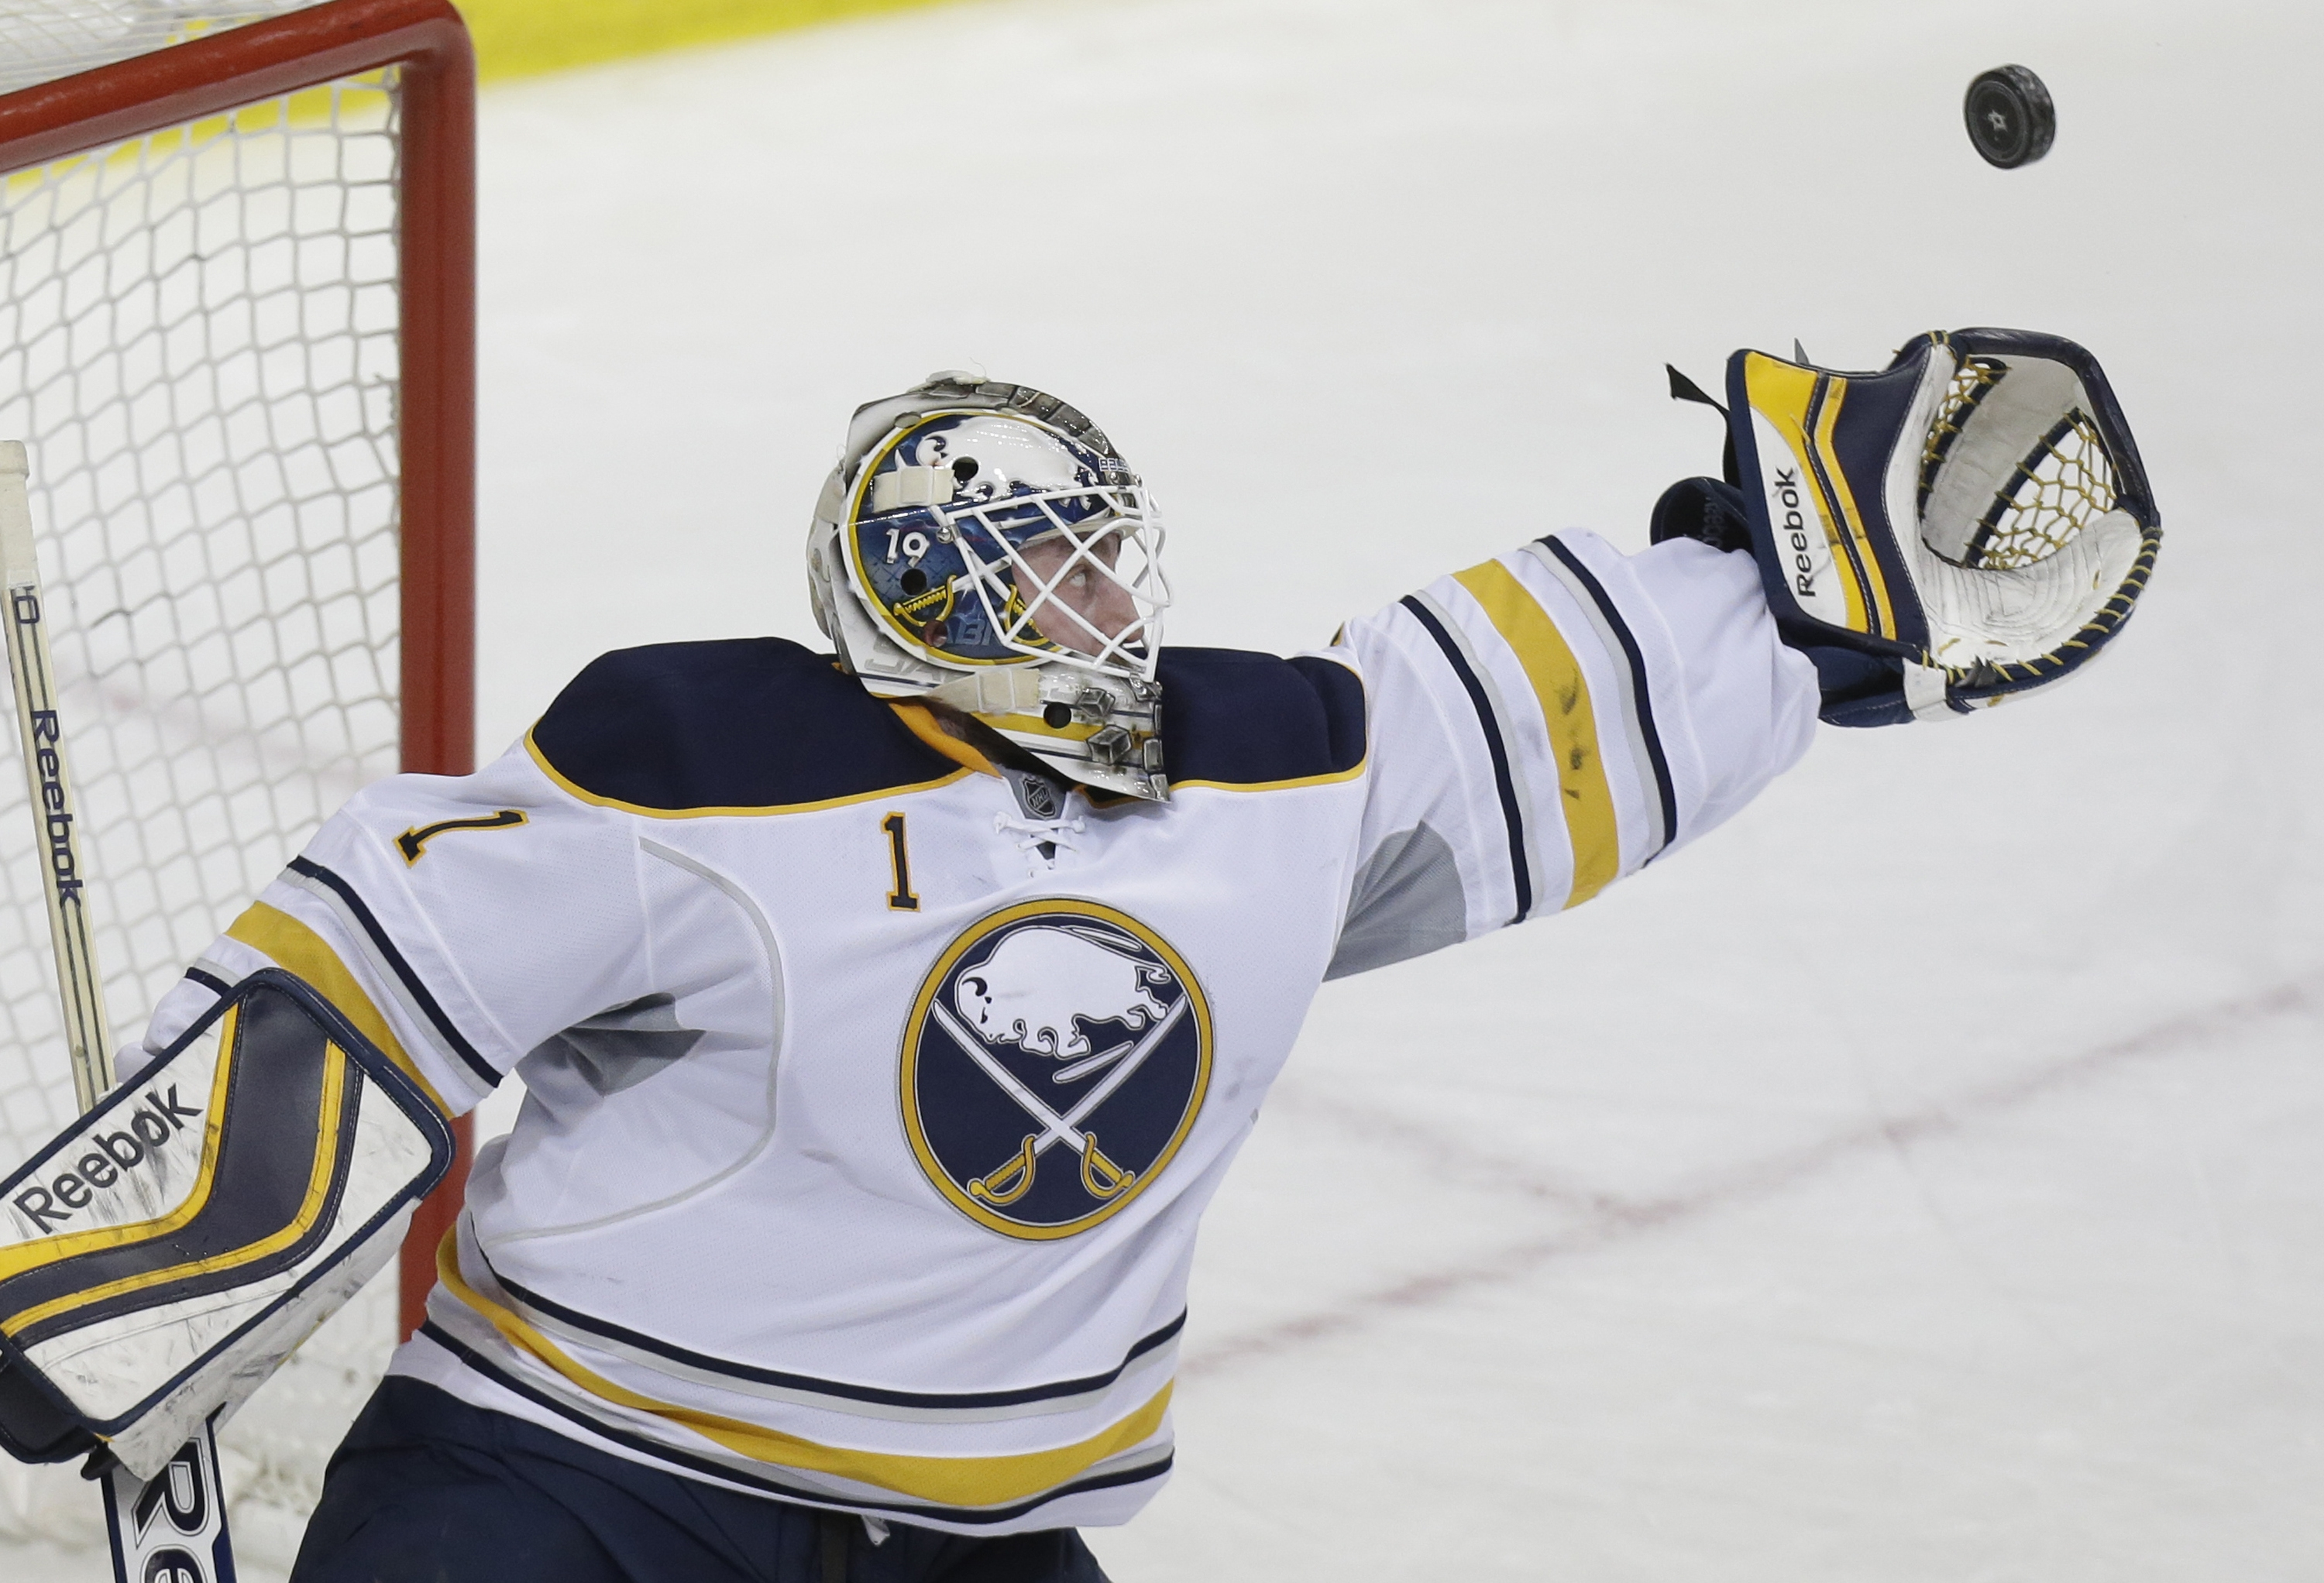 Sabres goalie Jhonas Enroth reaches to catch a shot during the first period in Dallas on Monday as he finished with 36 saves.